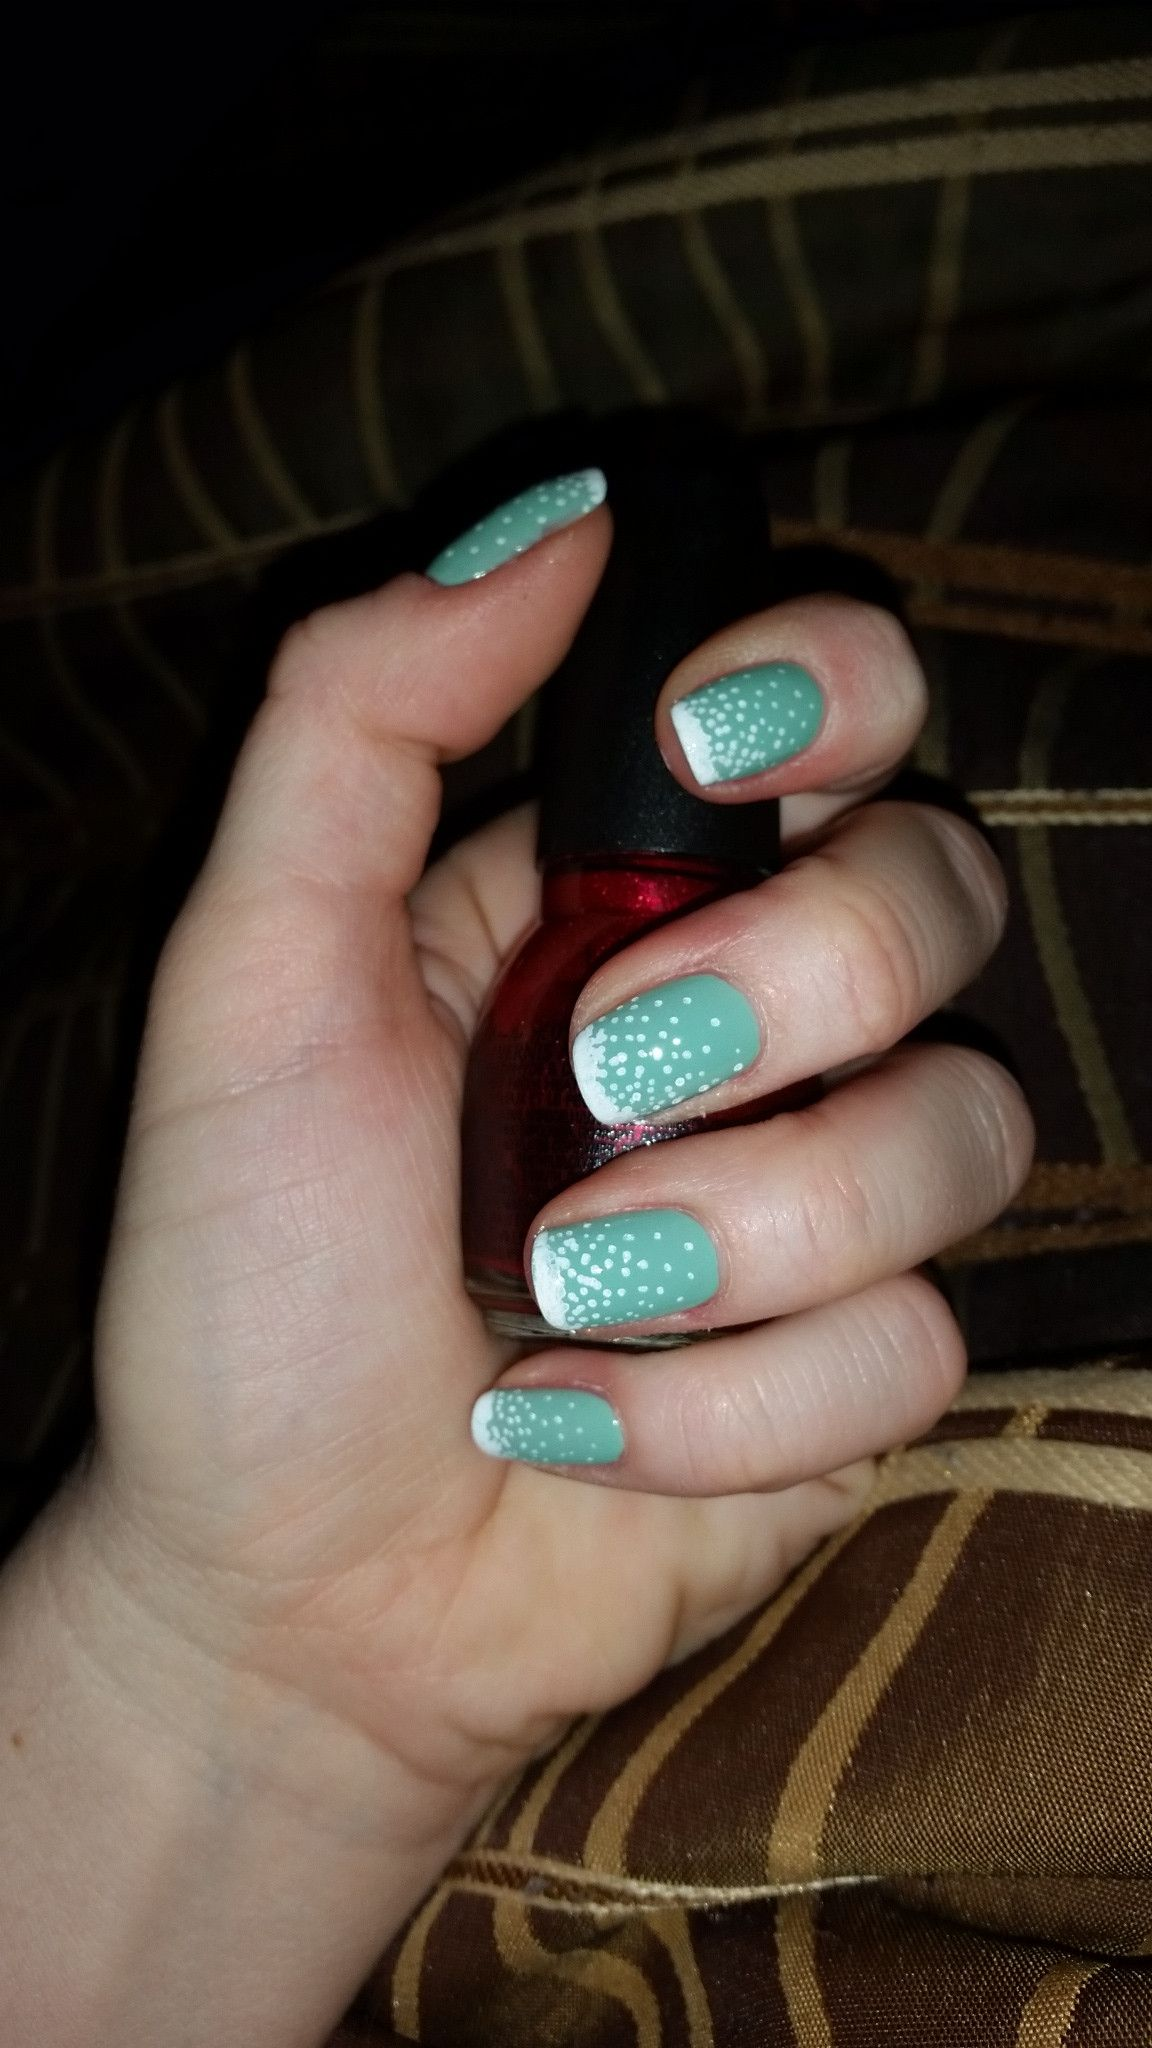 Matte mint nails with white dotted tips for a snowfall effect by user beckynickie on reddit.